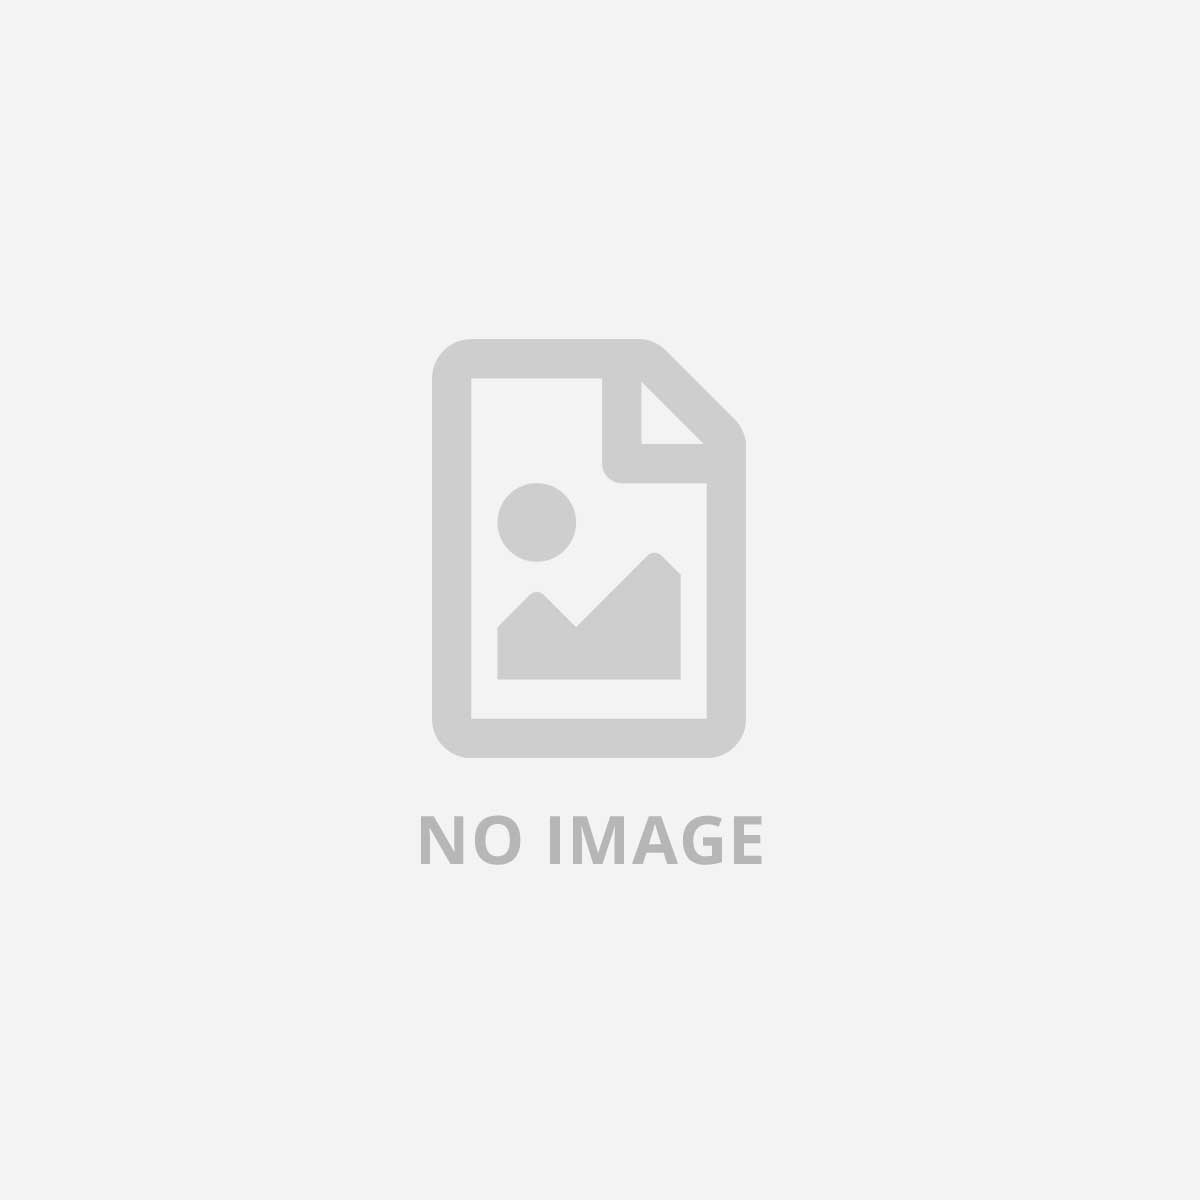 BLACK AND DECKER BLACKDECKER TASSELLATORE